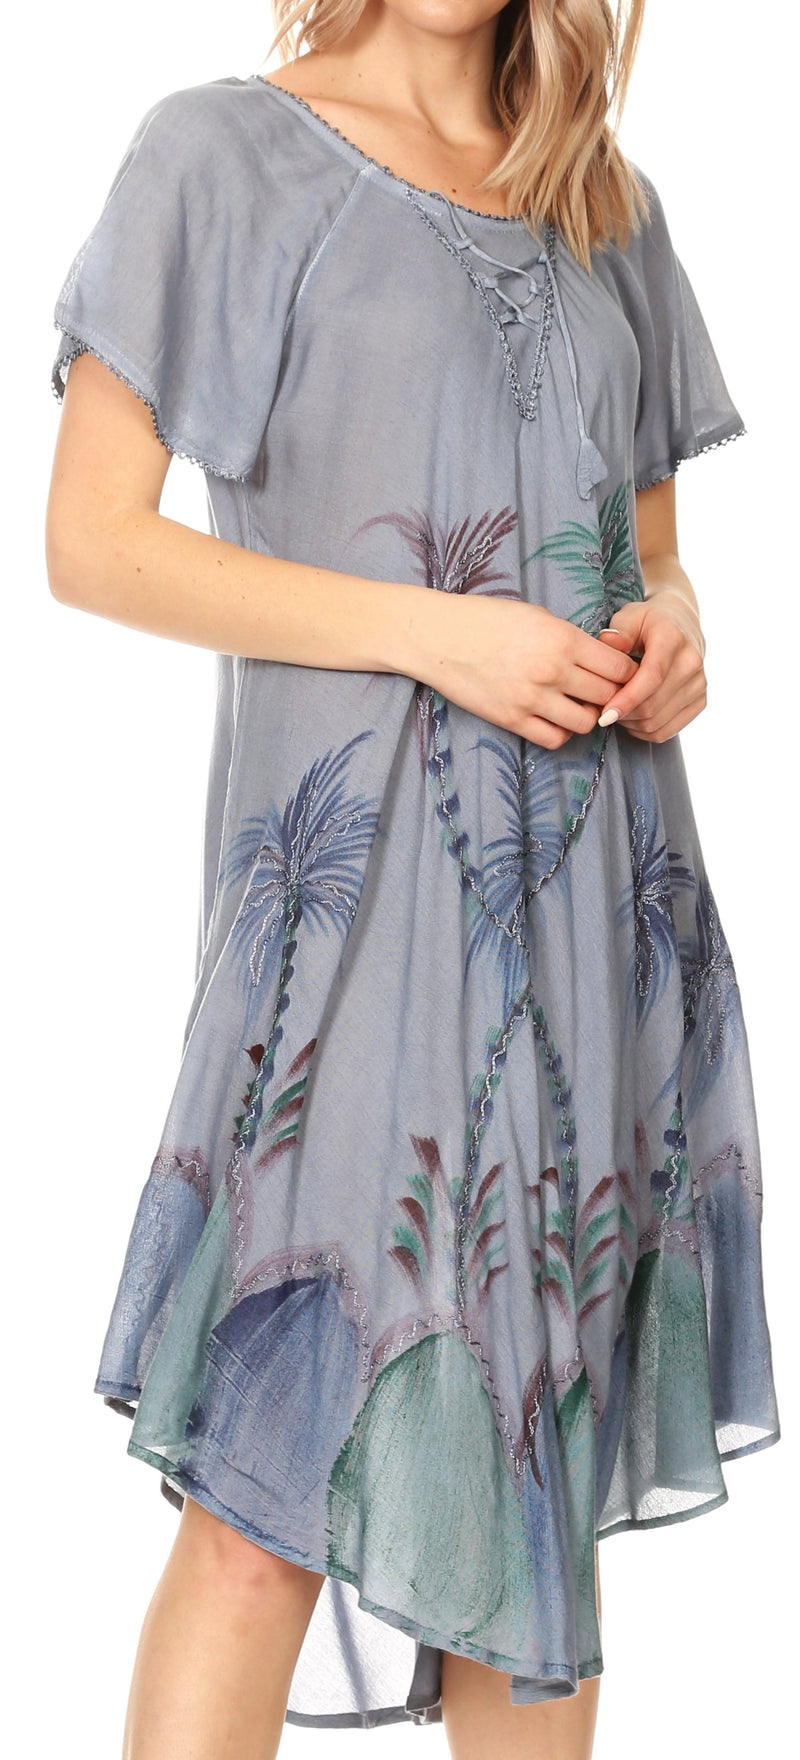 Sakkas Lida Womens Everyday Summer Relaxed Dress with Short Sleeves & Block Print